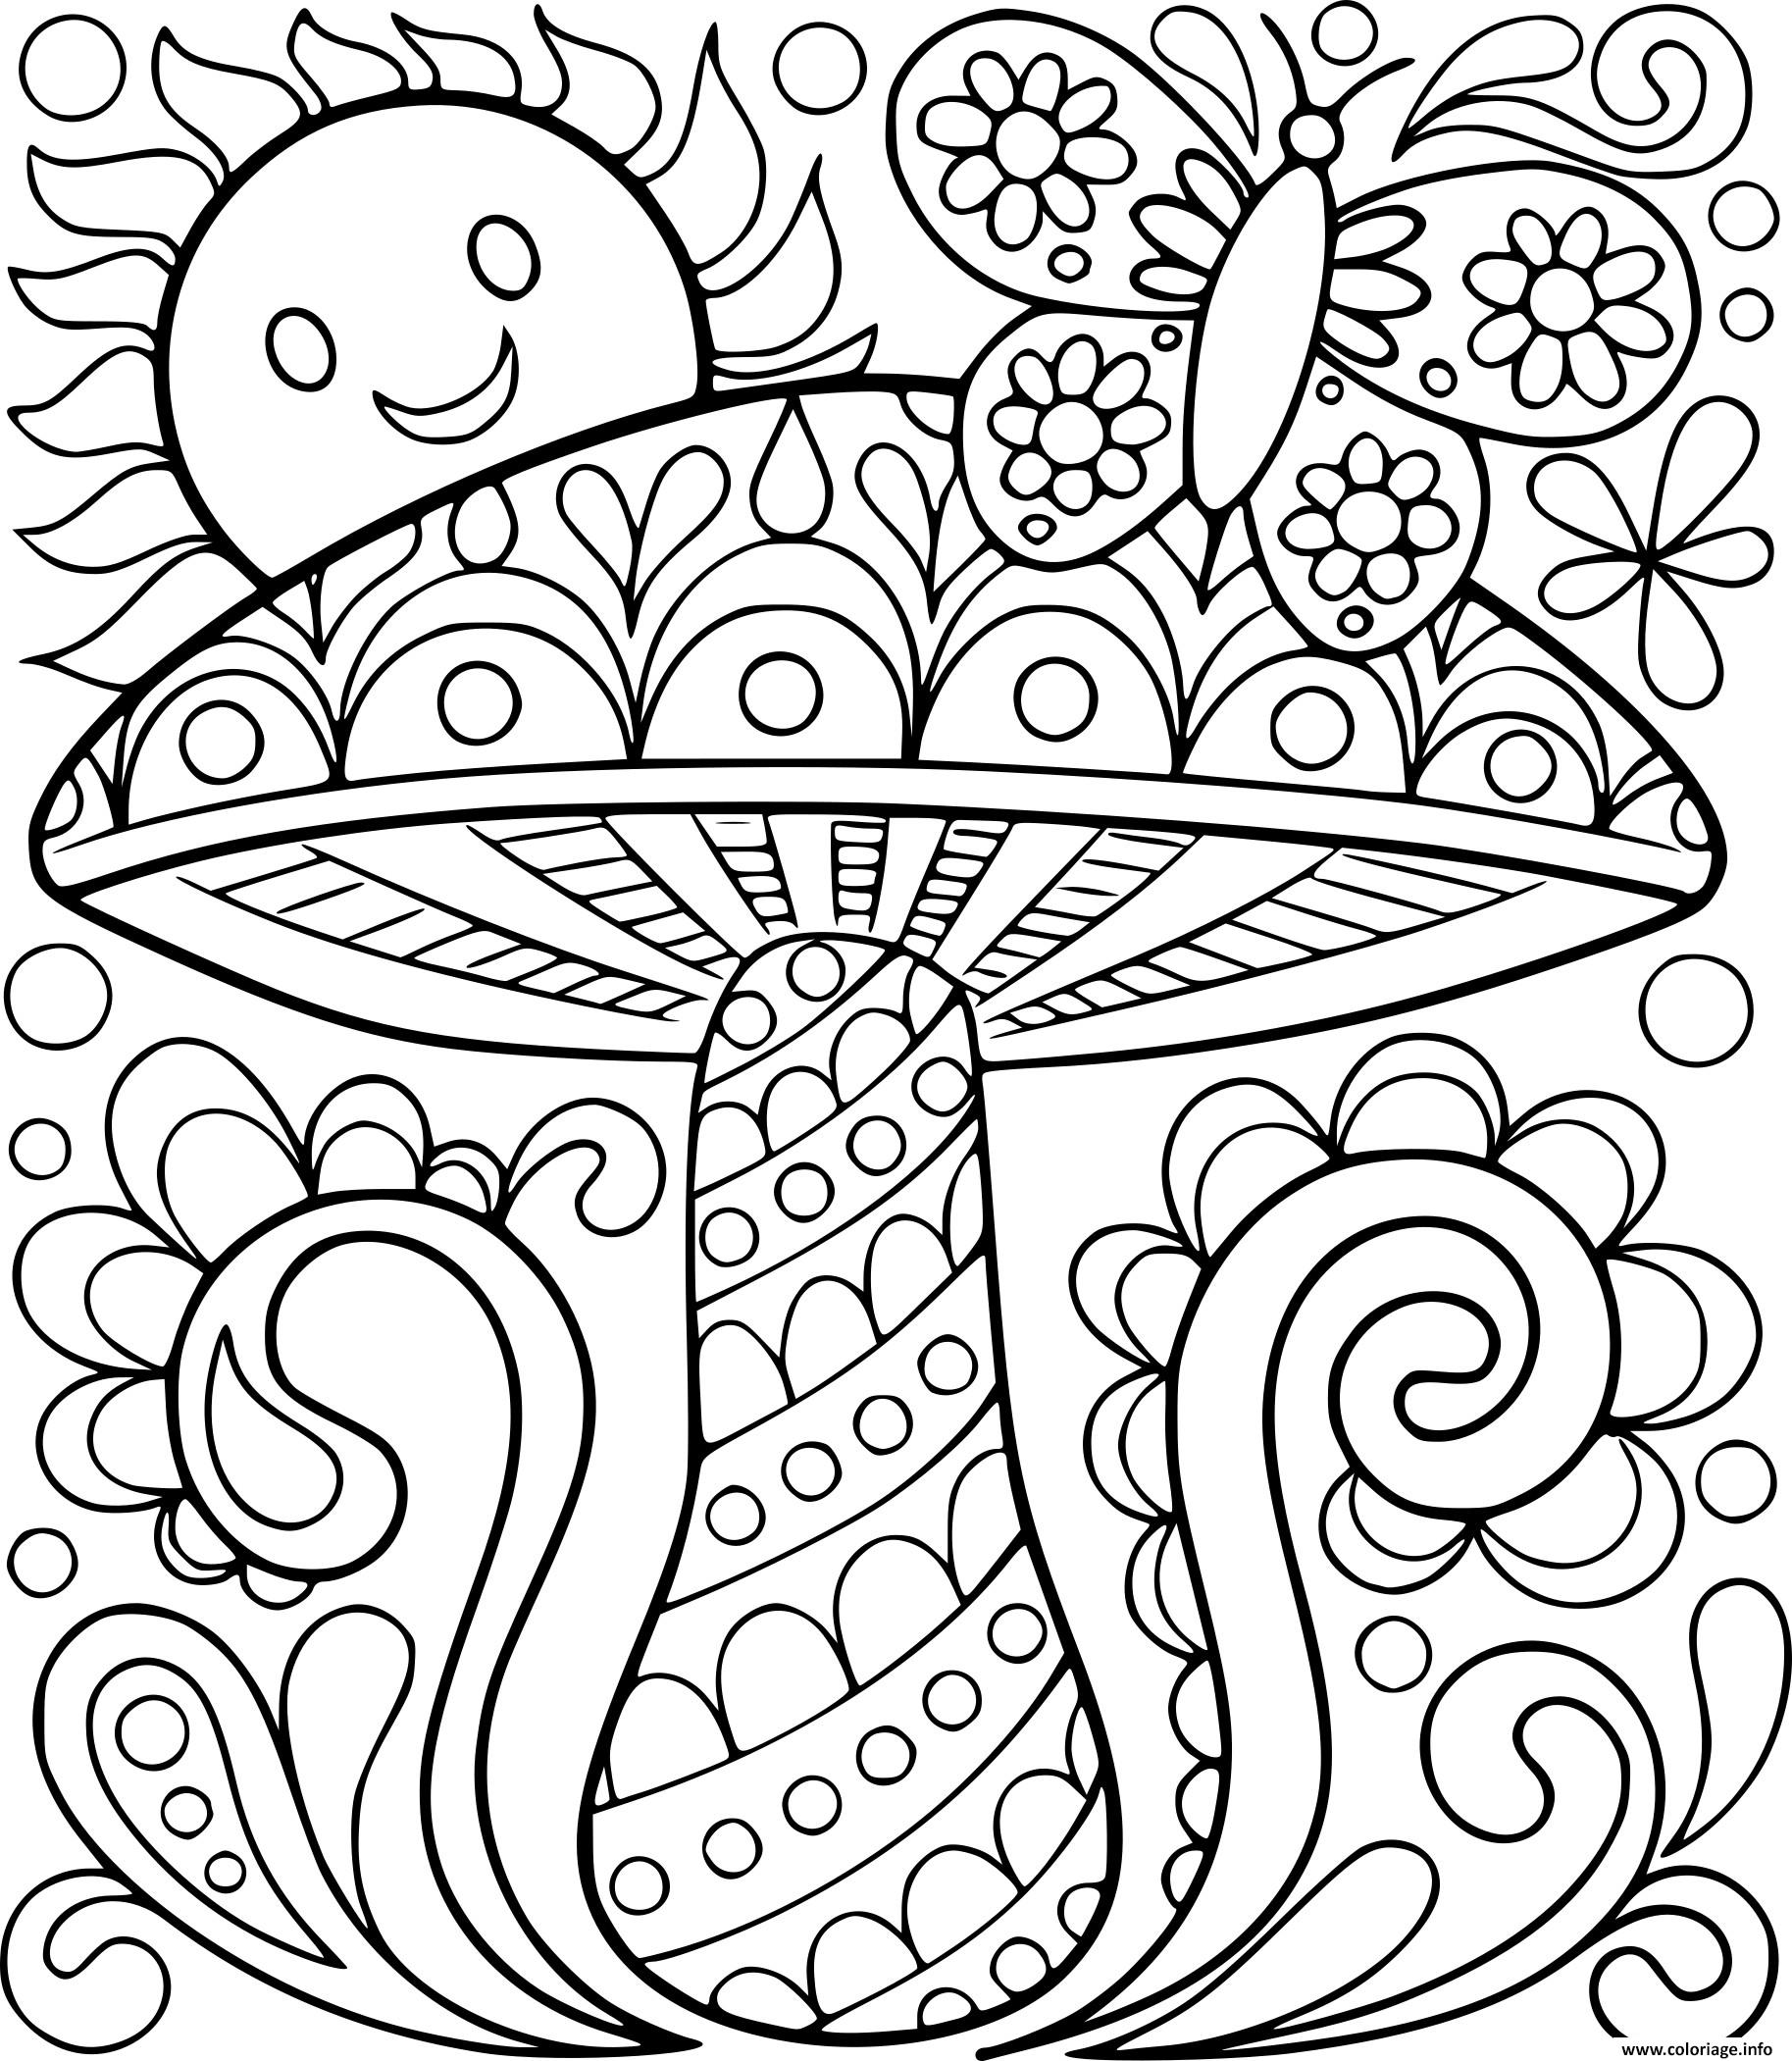 Coloriage Gratuit Nature.Coloriage Adulte Champignon Soleil Papillon Nature